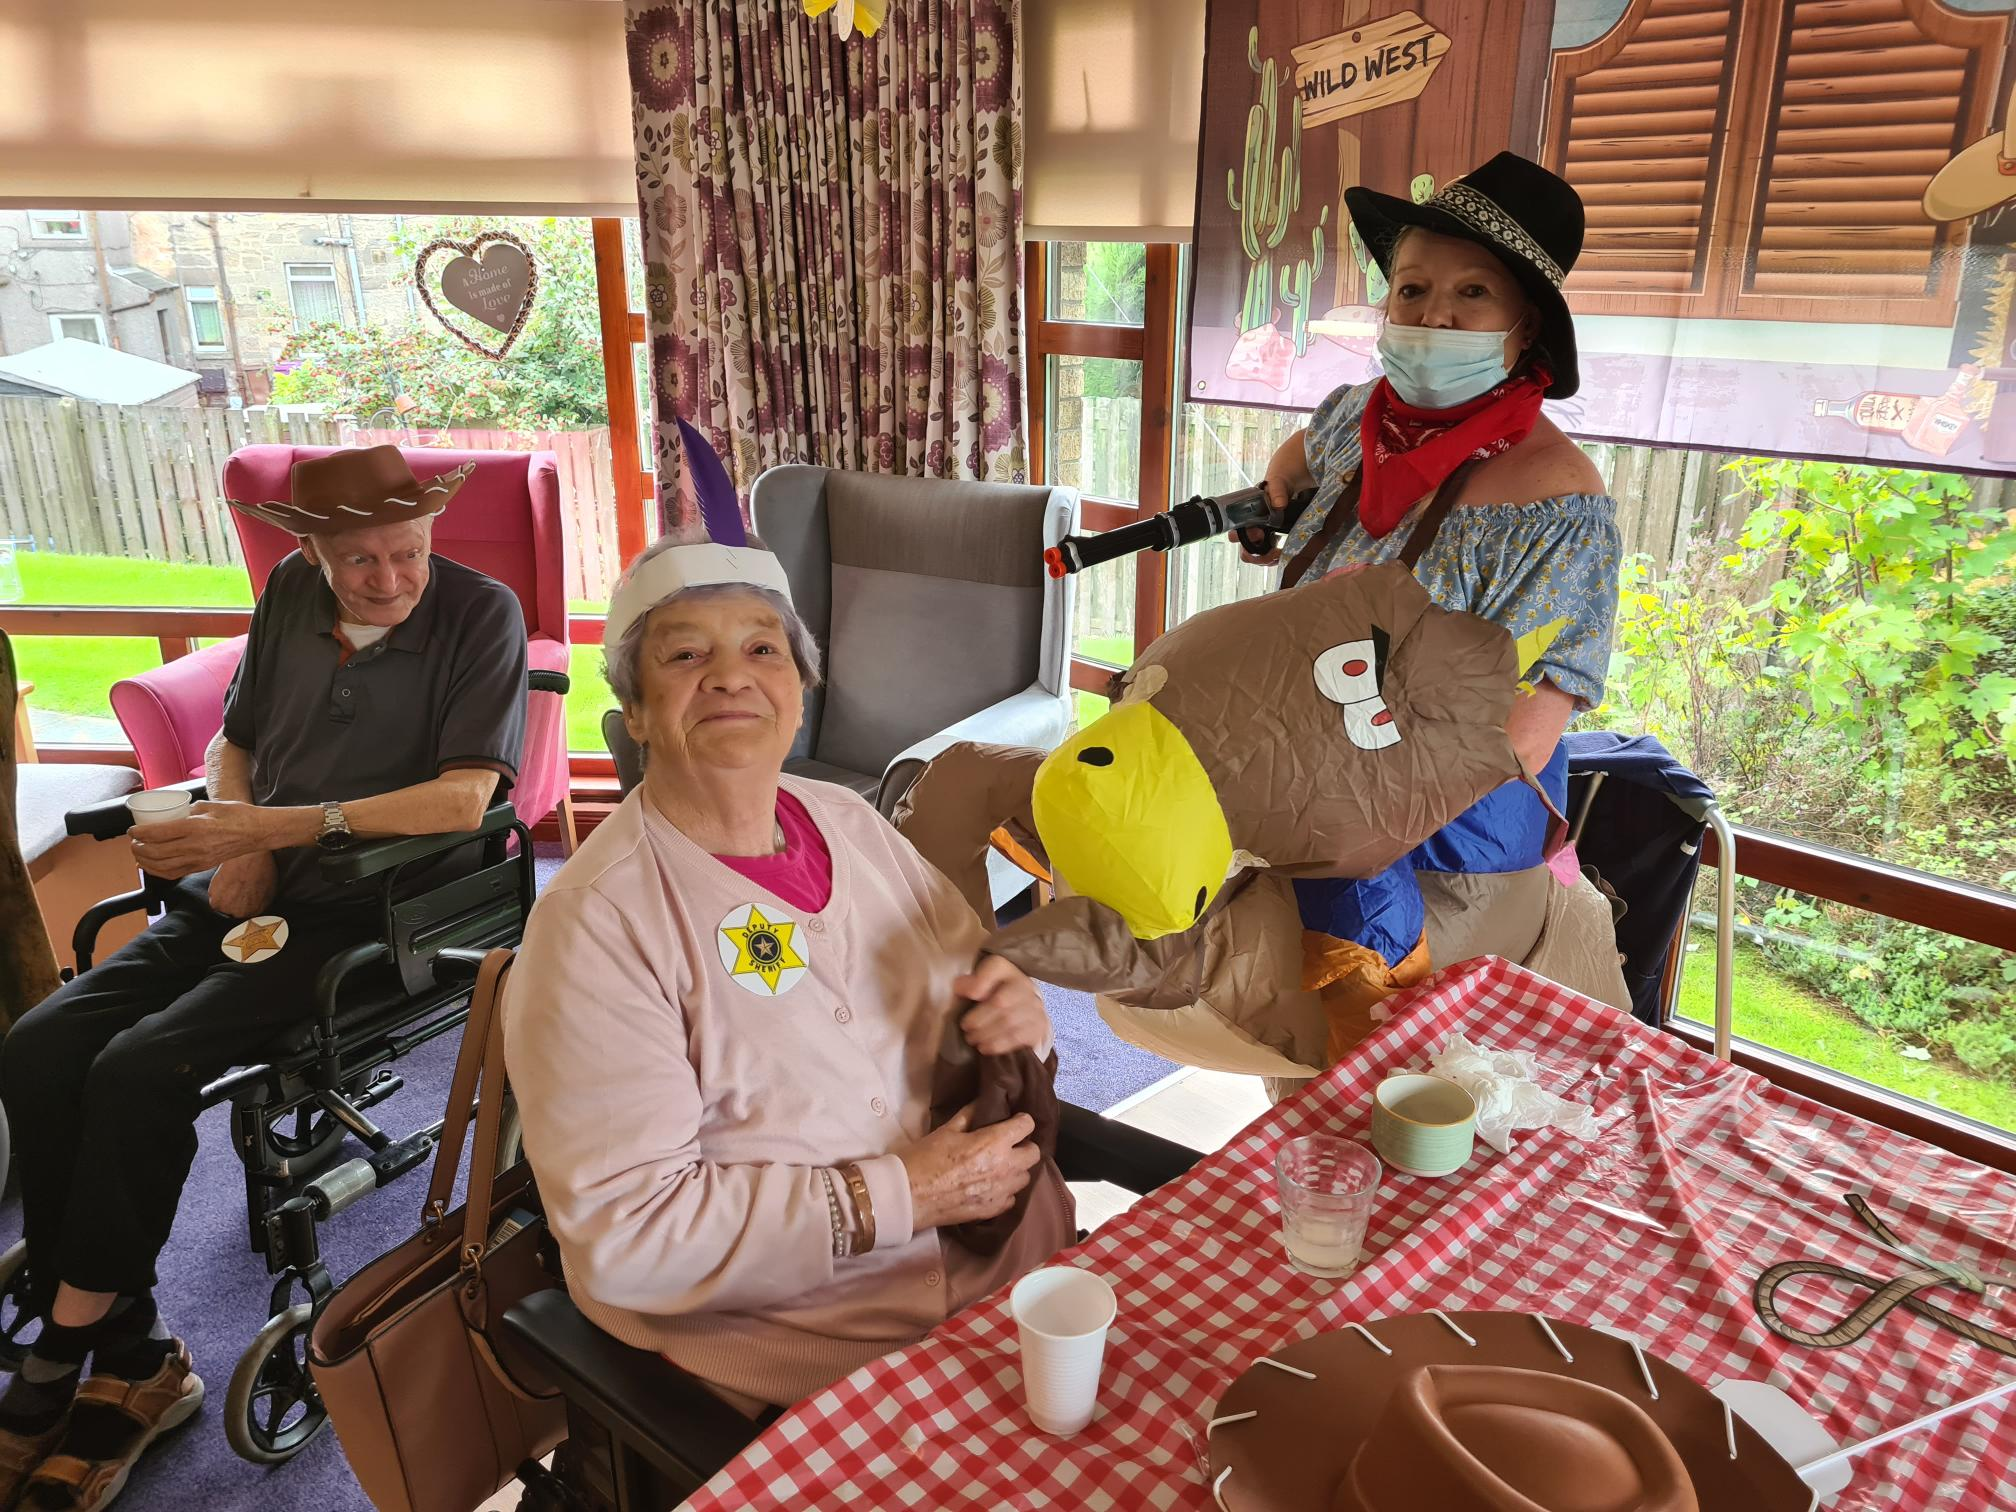 A Rootin' Tootin' Wild West show thrills care home residents.